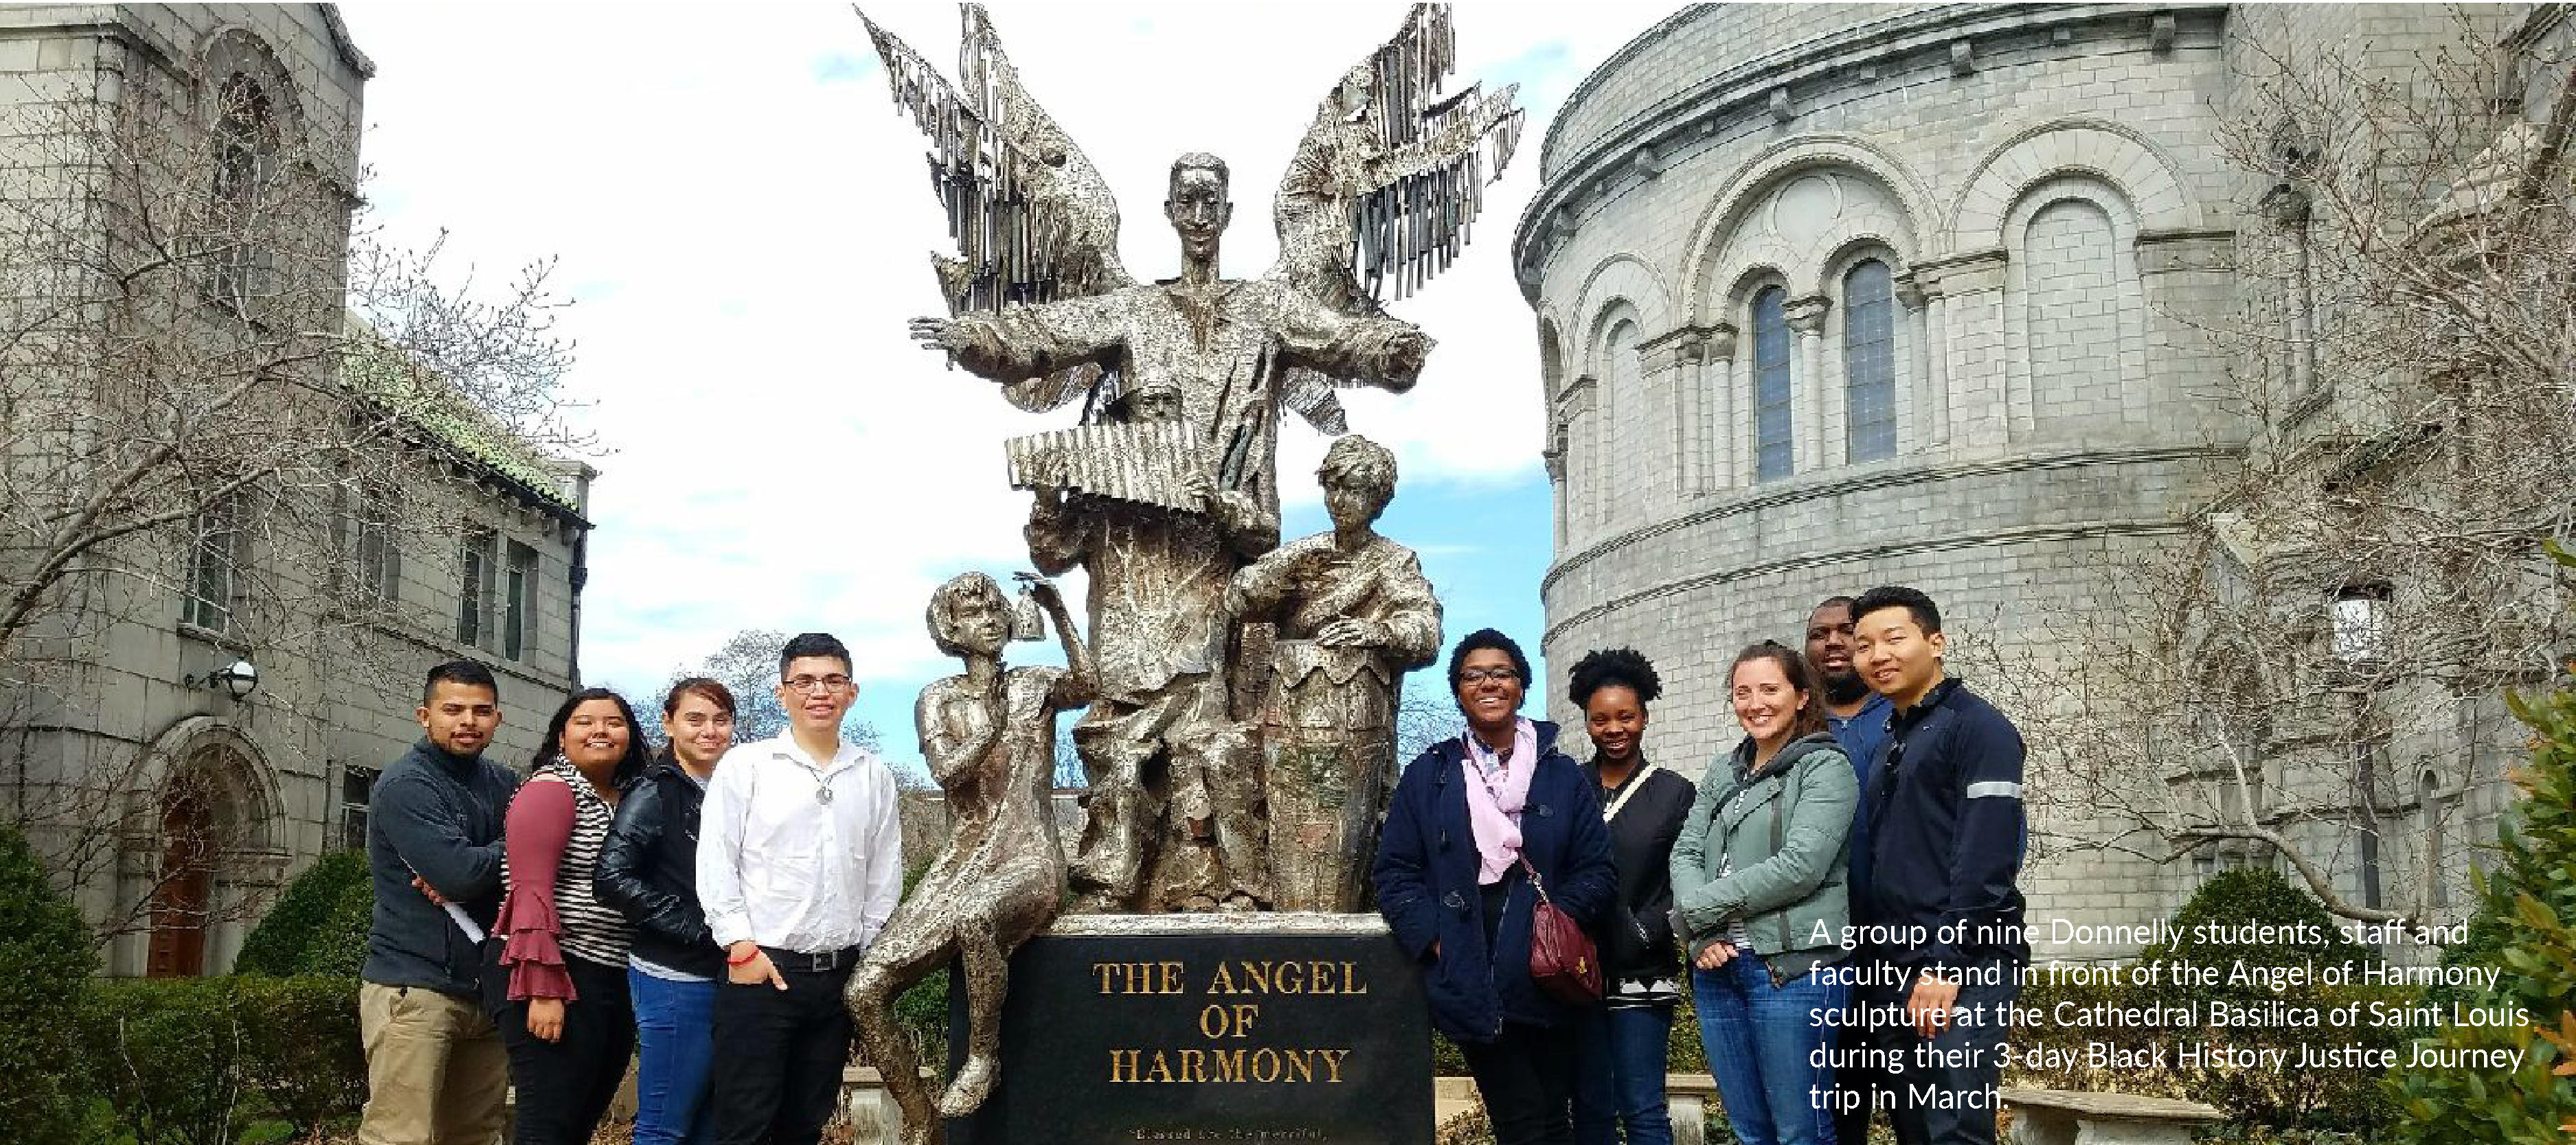 Donnelly students on Black History Justice Journey trip